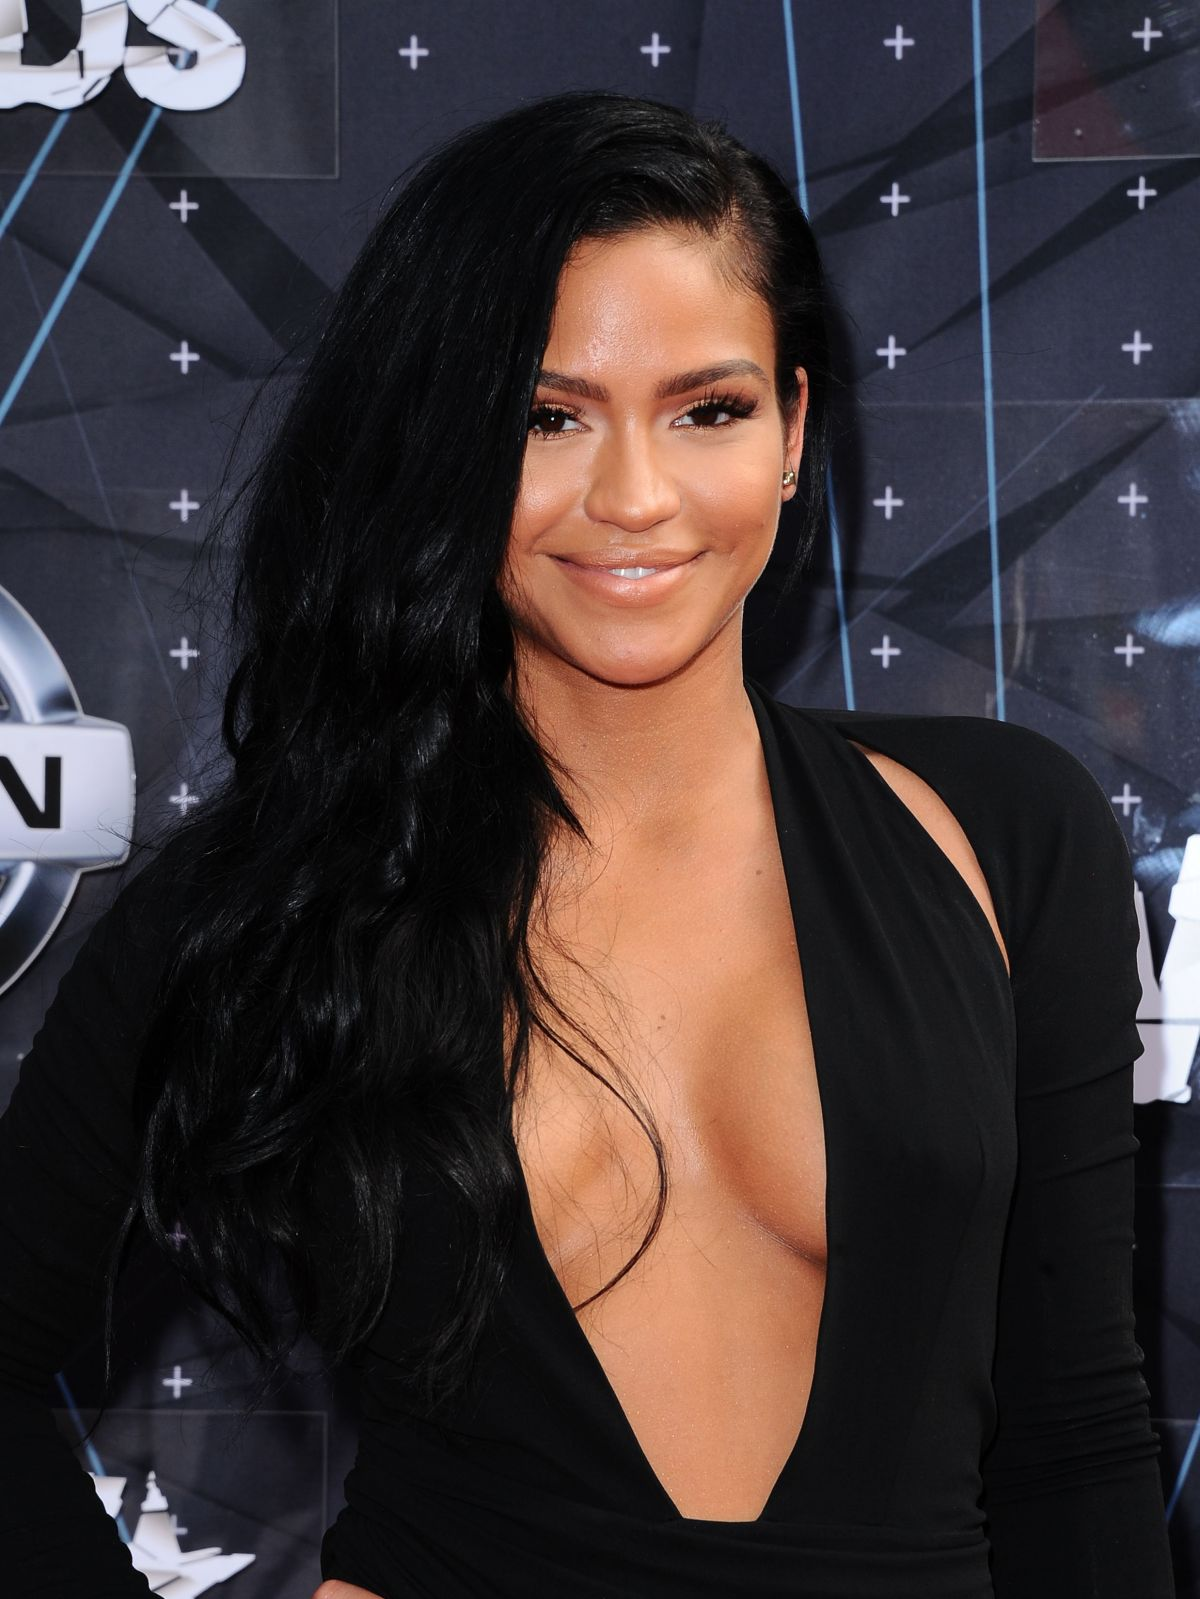 cassie ventura 2016cassie ventura 2017, cassie ventura 2016, cassie ventura insta, cassie ventura twitter, cassie ventura site, cassie ventura albums, cassie ventura live, cassie ventura instagram, cassie ventura and diddy, cassie ventura step up 2, cassie ventura father, cassie ventura news, cassie ventura gif tumblr, cassie ventura, cassie ventura tumblr, cassie ventura 2015, cassie ventura parents, cassie ventura and p diddy, cassie ventura wiki, cassie ventura me u